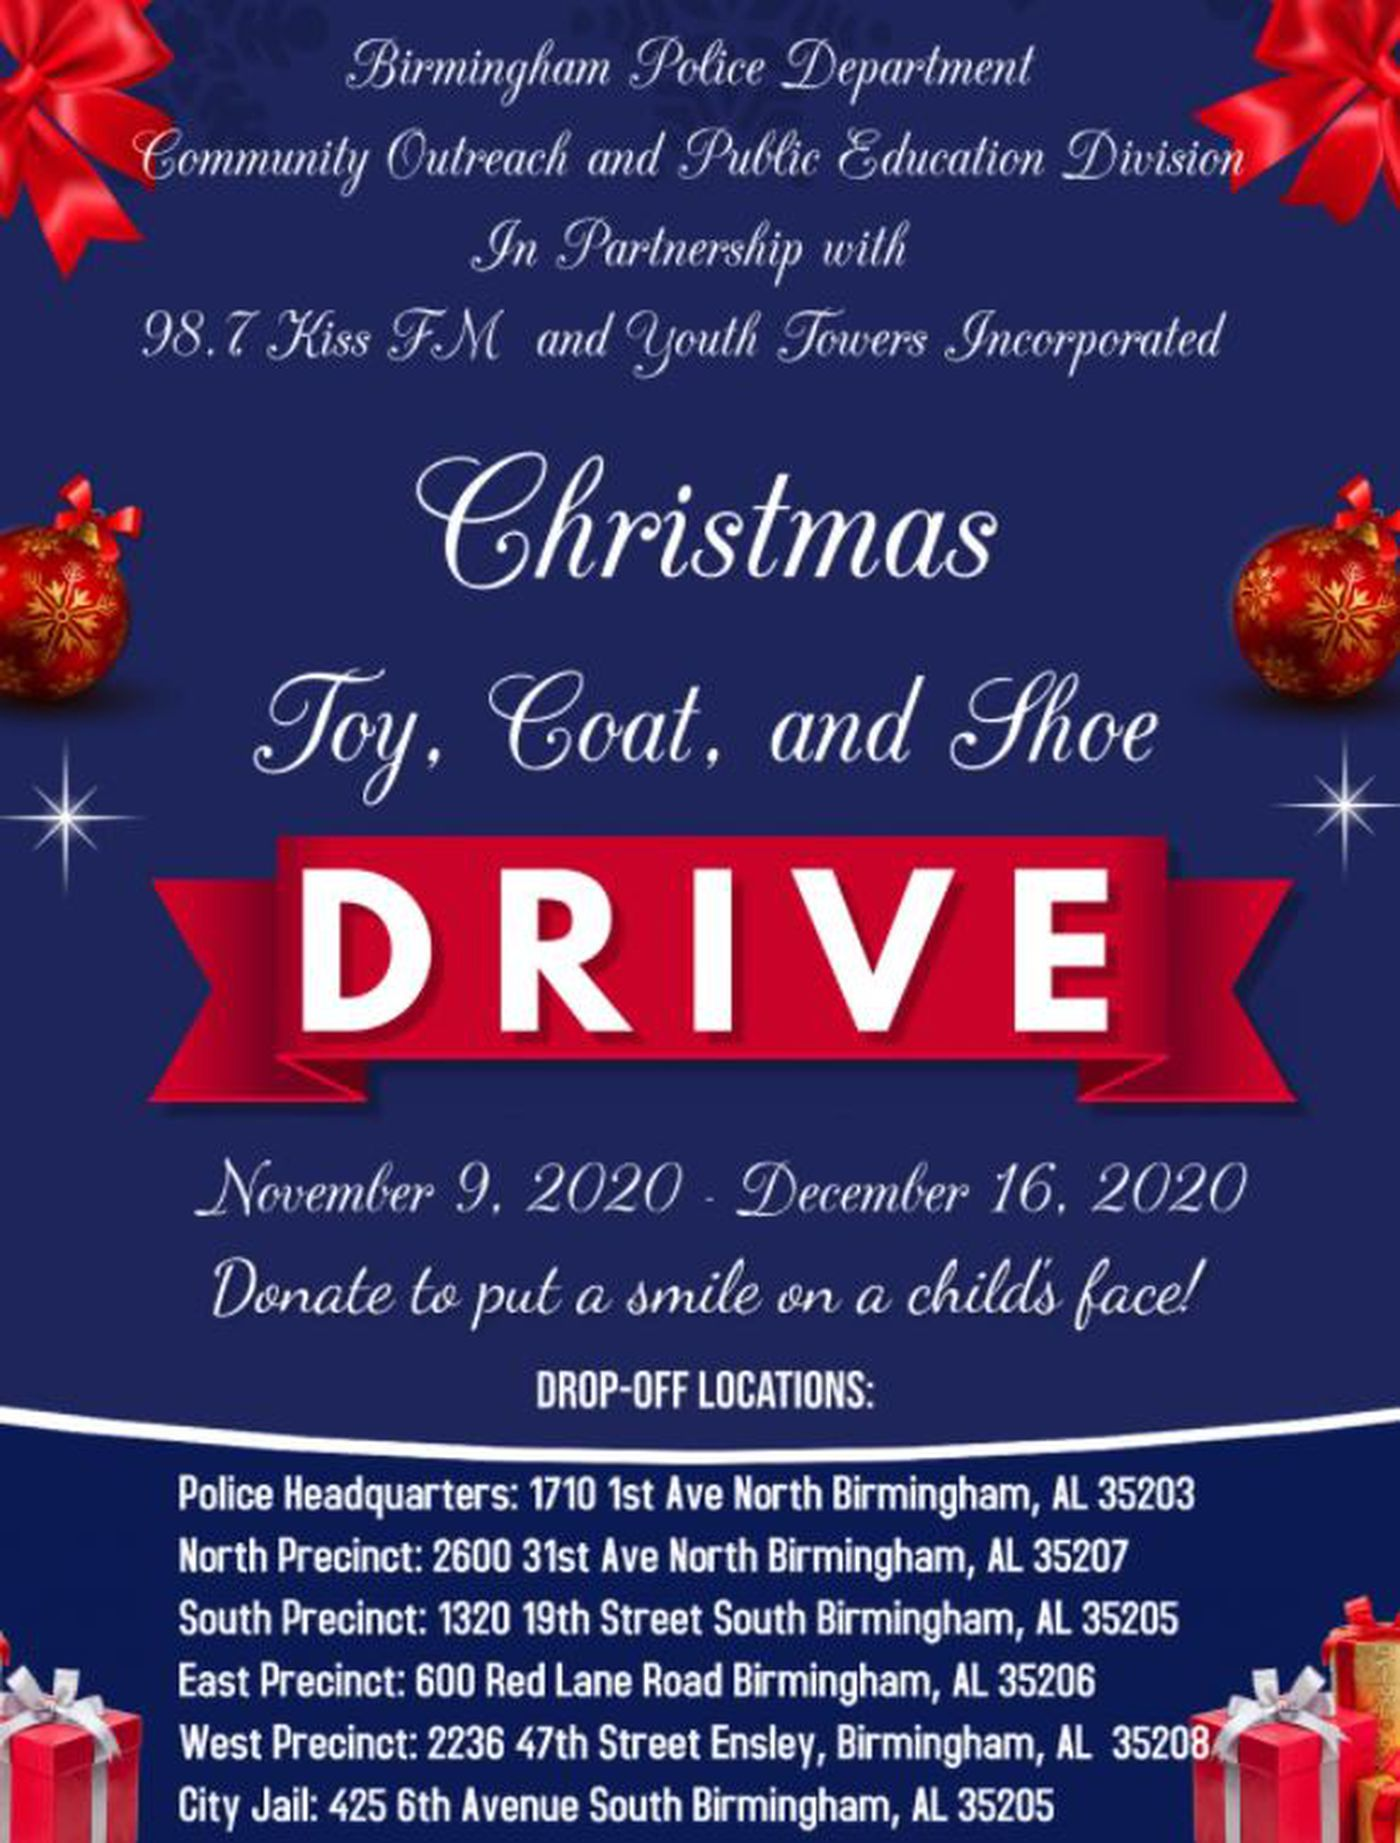 98° At Christmas 2020, December 1 Birmingham Police hosting a toy, coat and shoe drive